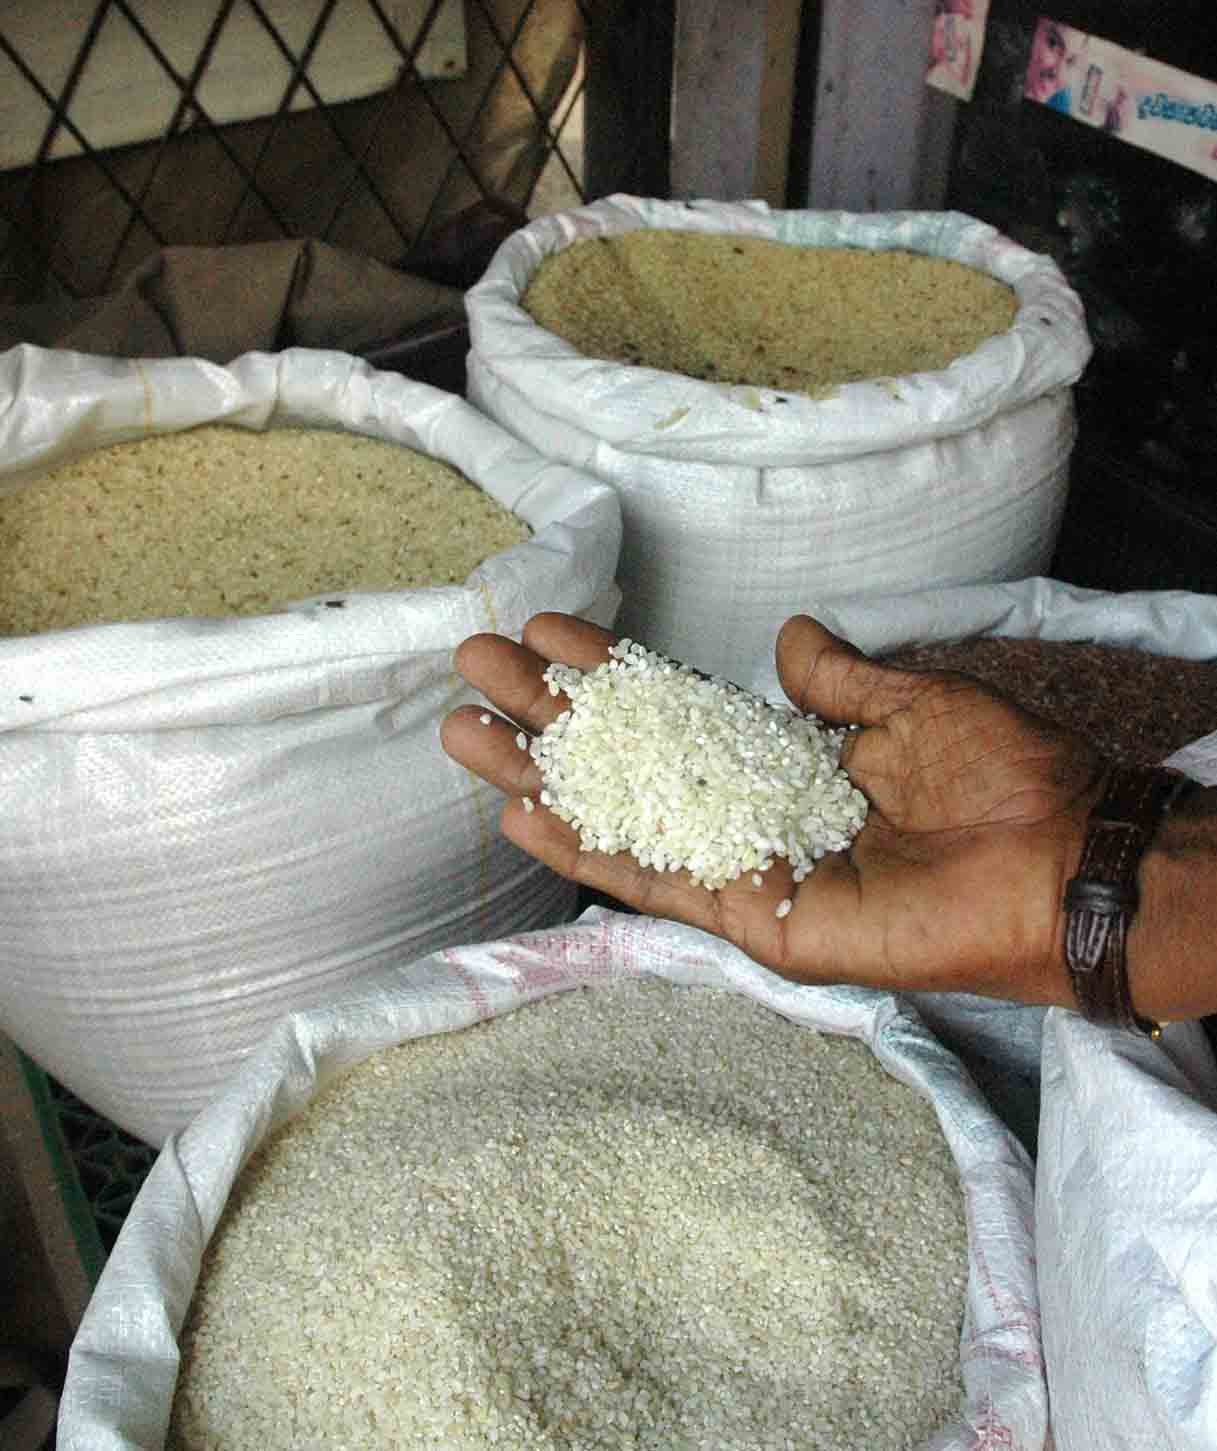 A woman checks rice at a grocery store in Colombo, Sri Lanka. With rice in short supply and at record prices, poor families are cutting back on meals and forgoing the purchase of essentials such as schooling and medical care.